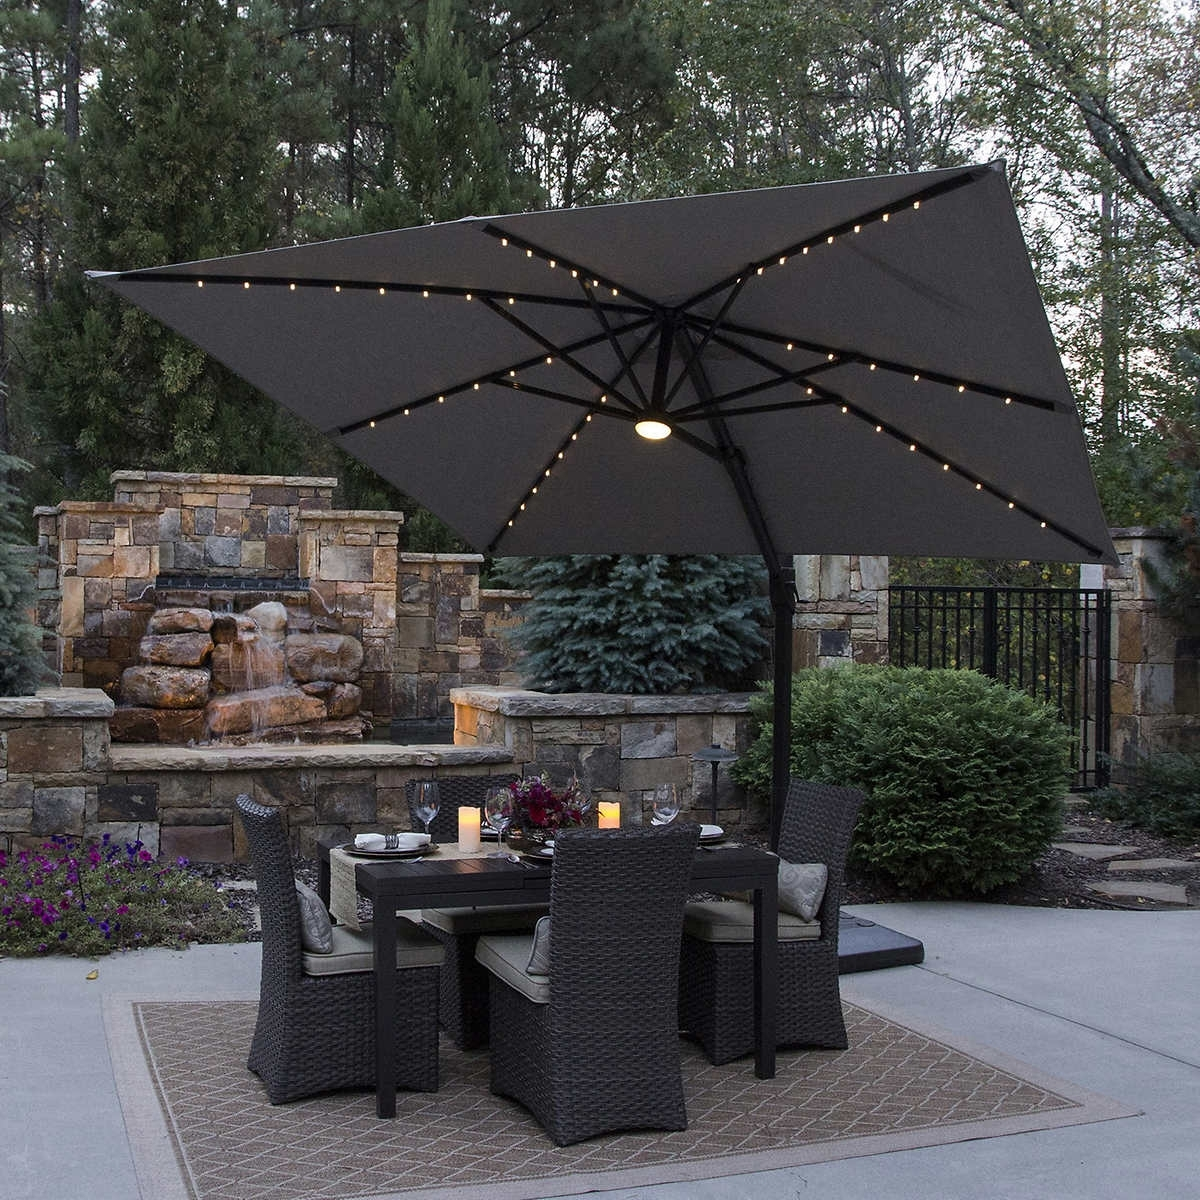 Costco Patio Umbrellas Regarding Fashionable Dark Costco Patio Umbrella : Acvap Homes – Cleaning Costco Patio (View 5 of 20)